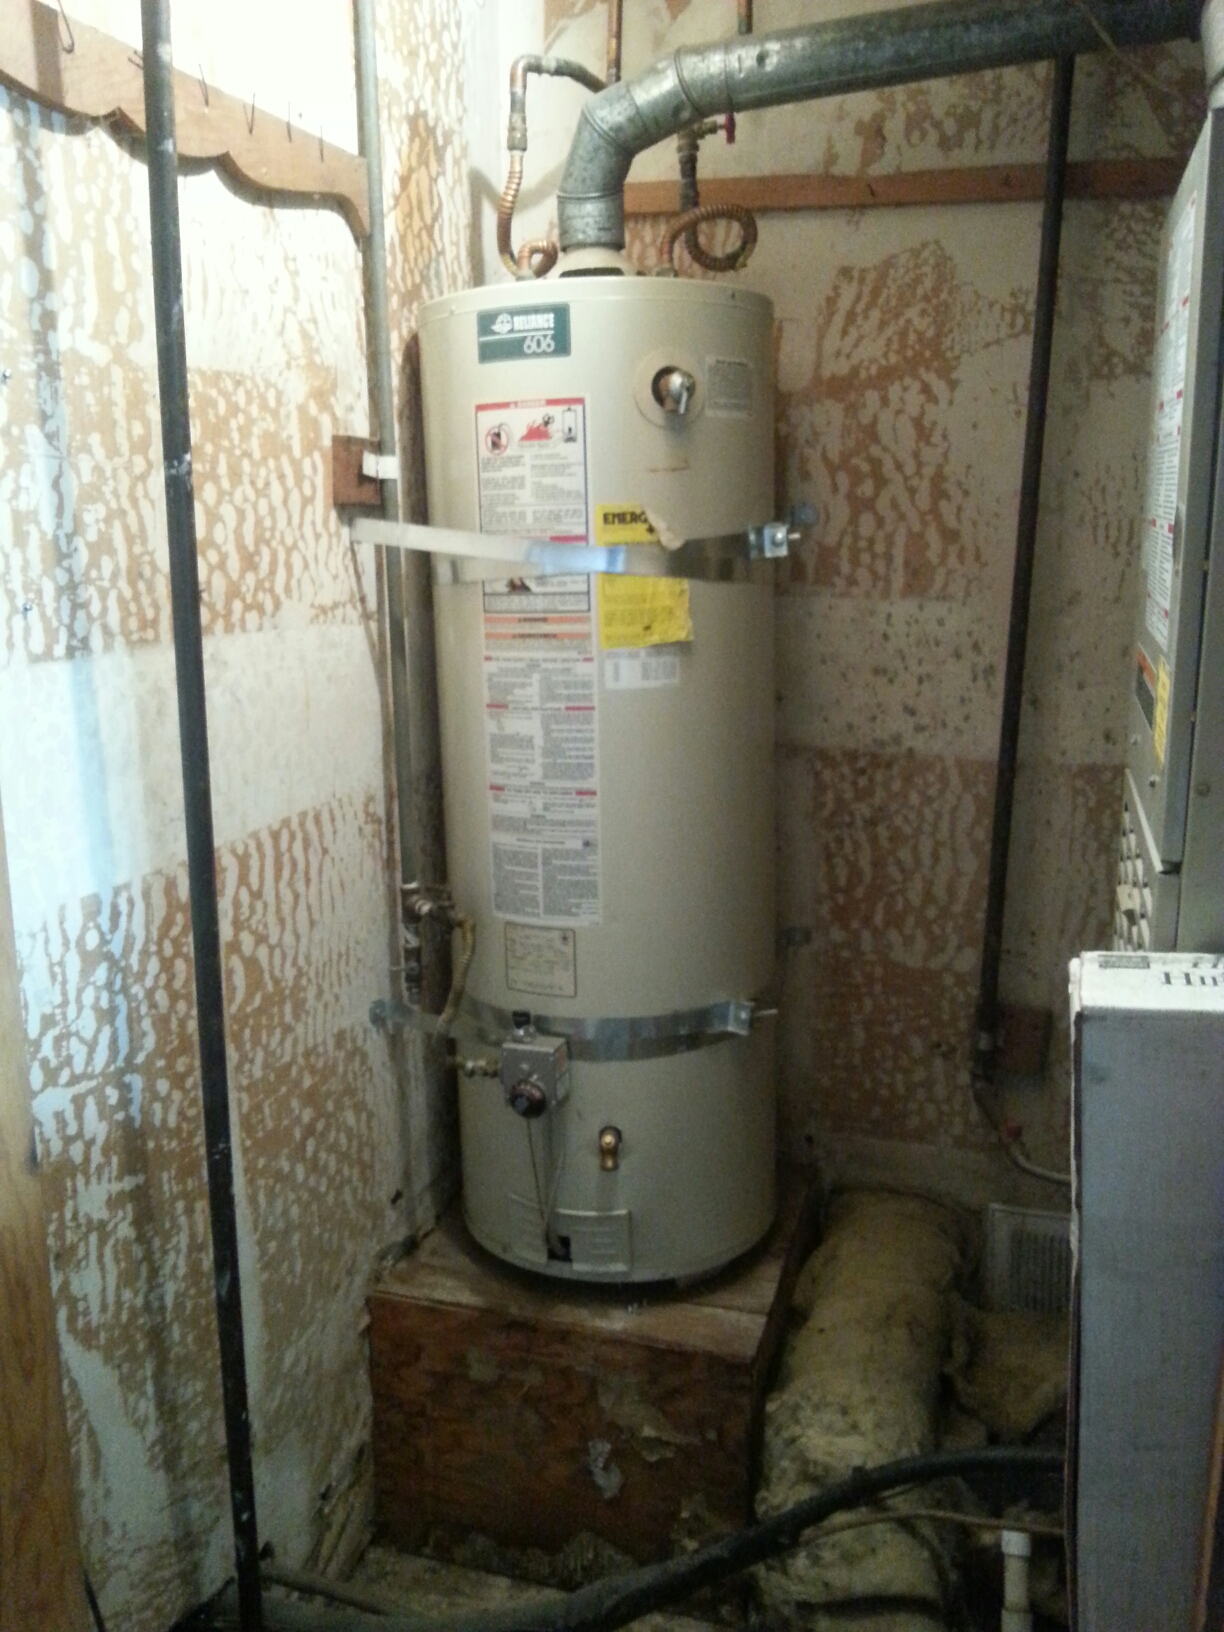 Folsom, CA - Folsom plumbing repair 50 gallon tank water heater